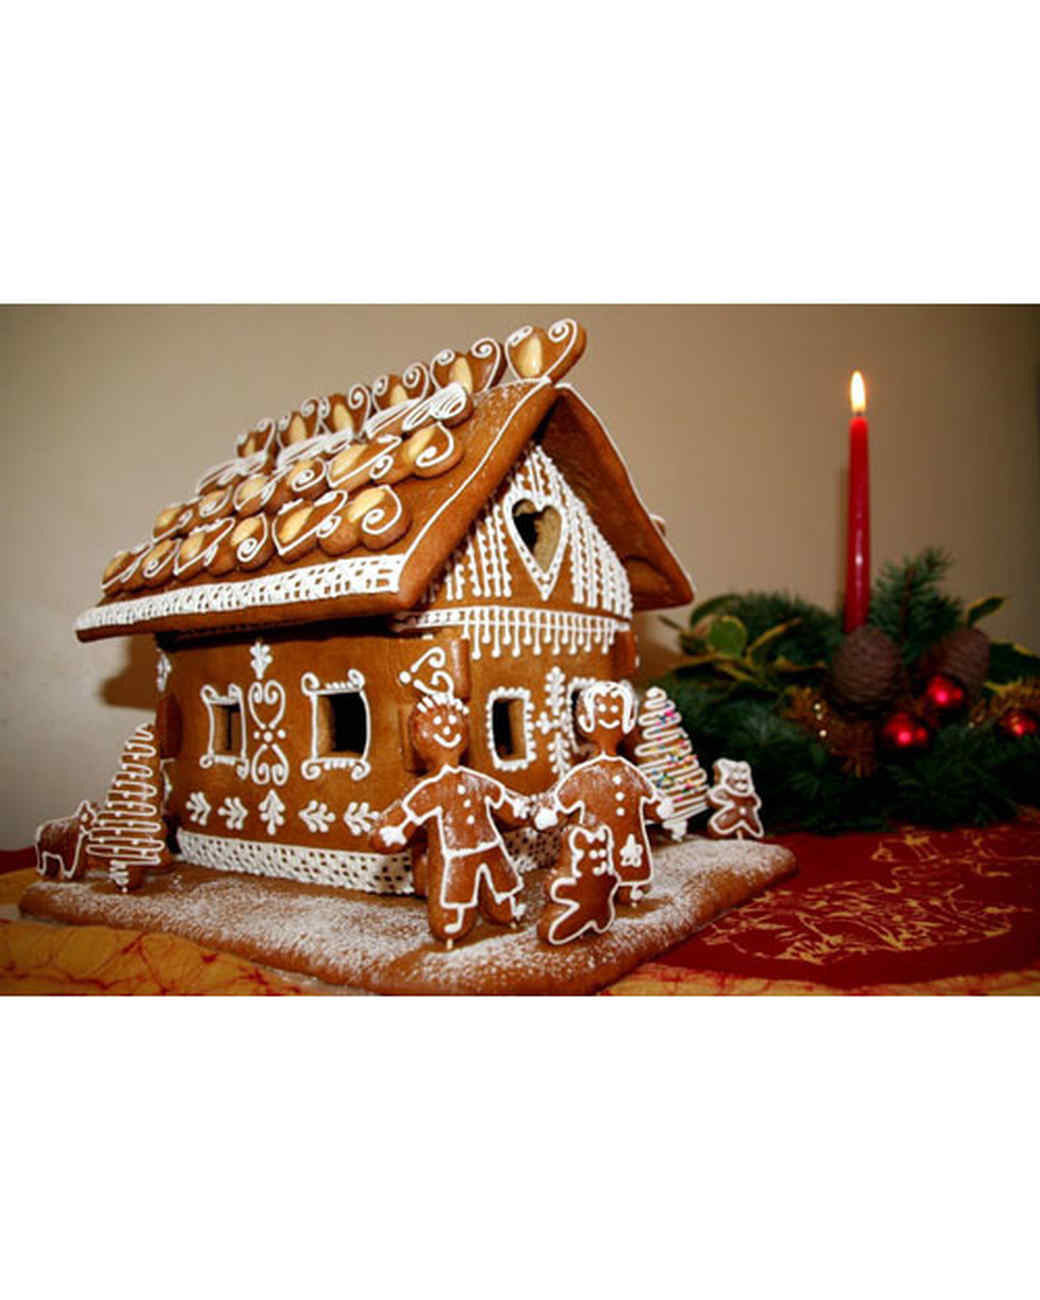 Ranch style gingerbread houses